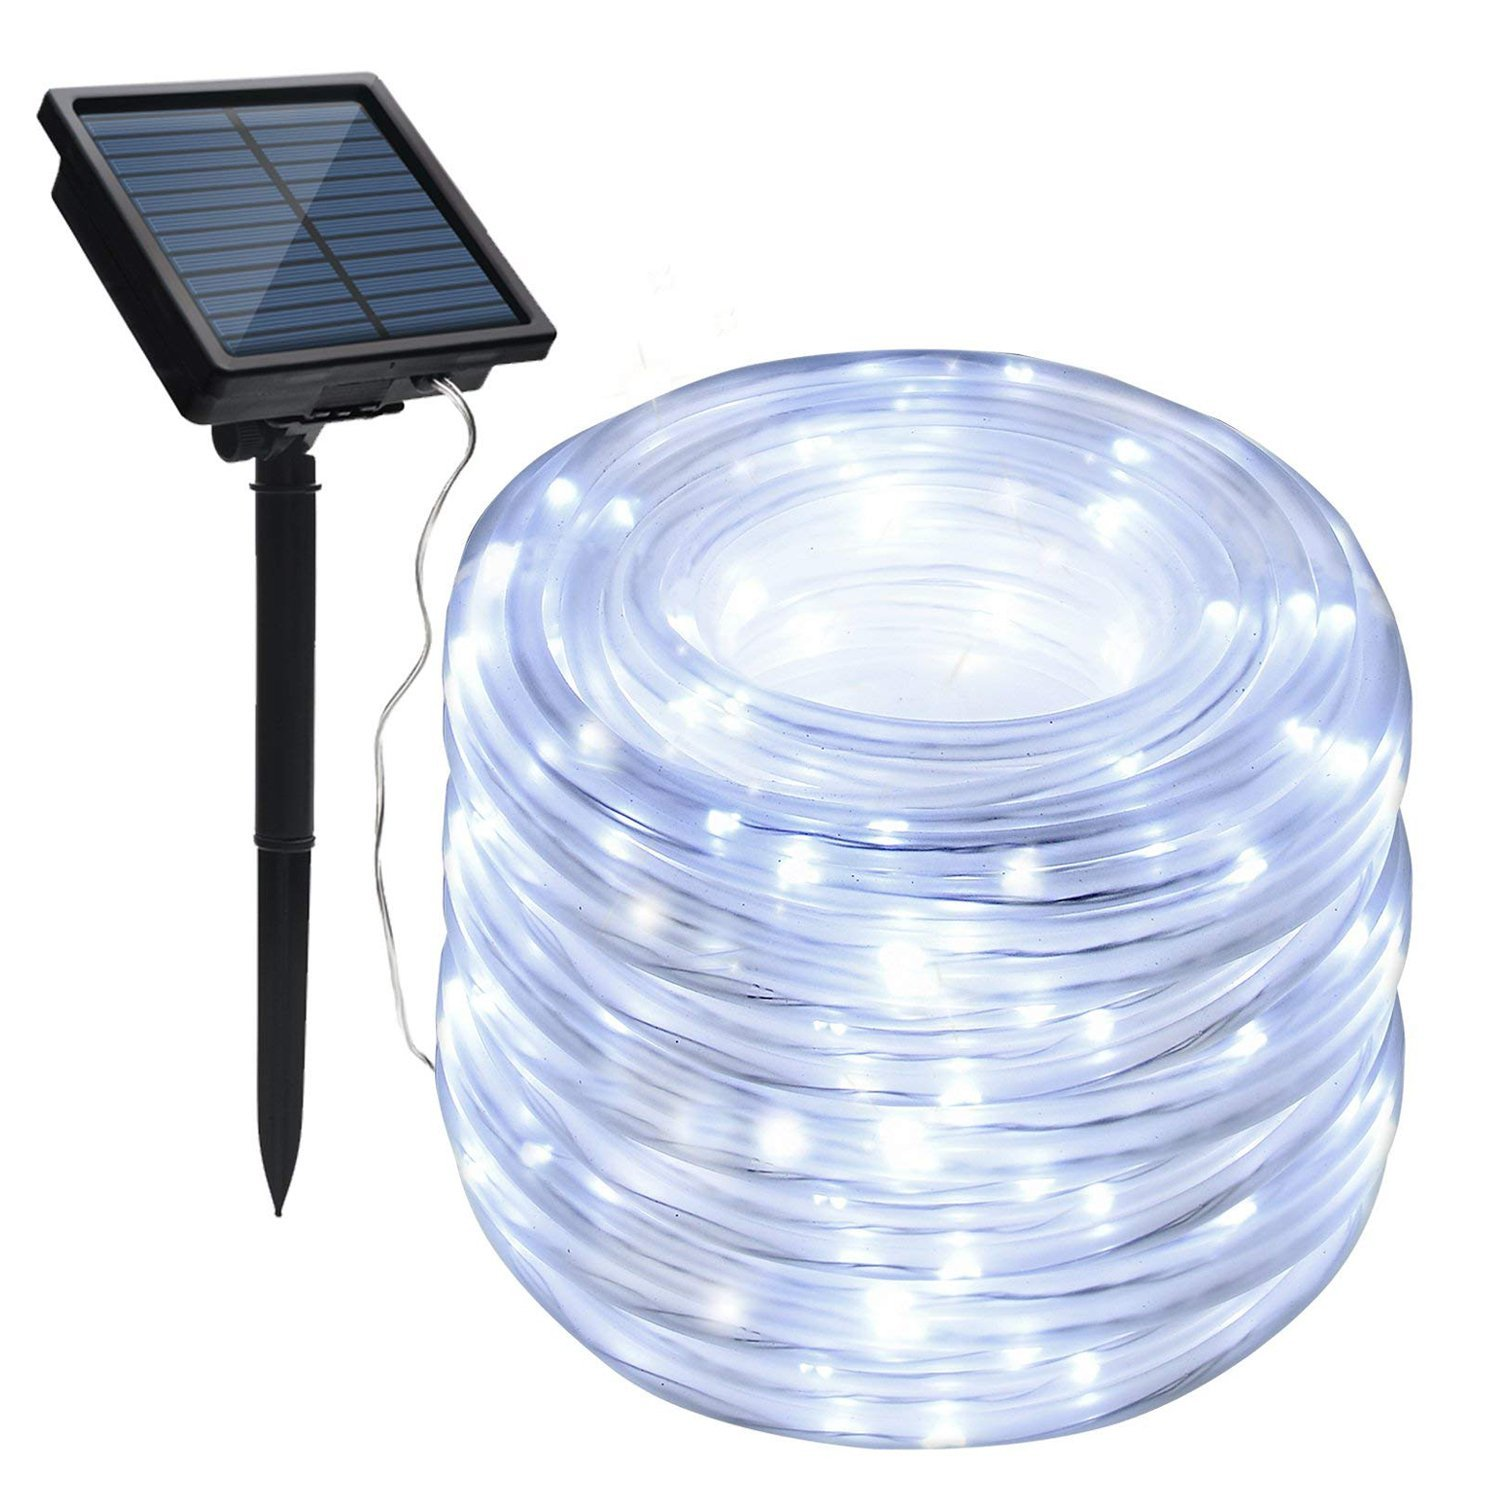 MUEQU Solar Rope String Lights, Waterproof 100 LEDs 39ft/12M Outdoor Decoration String Lights with PVC Tube Cover for Trees Patio Gardens Party Christmas Holiday Wedding (White)